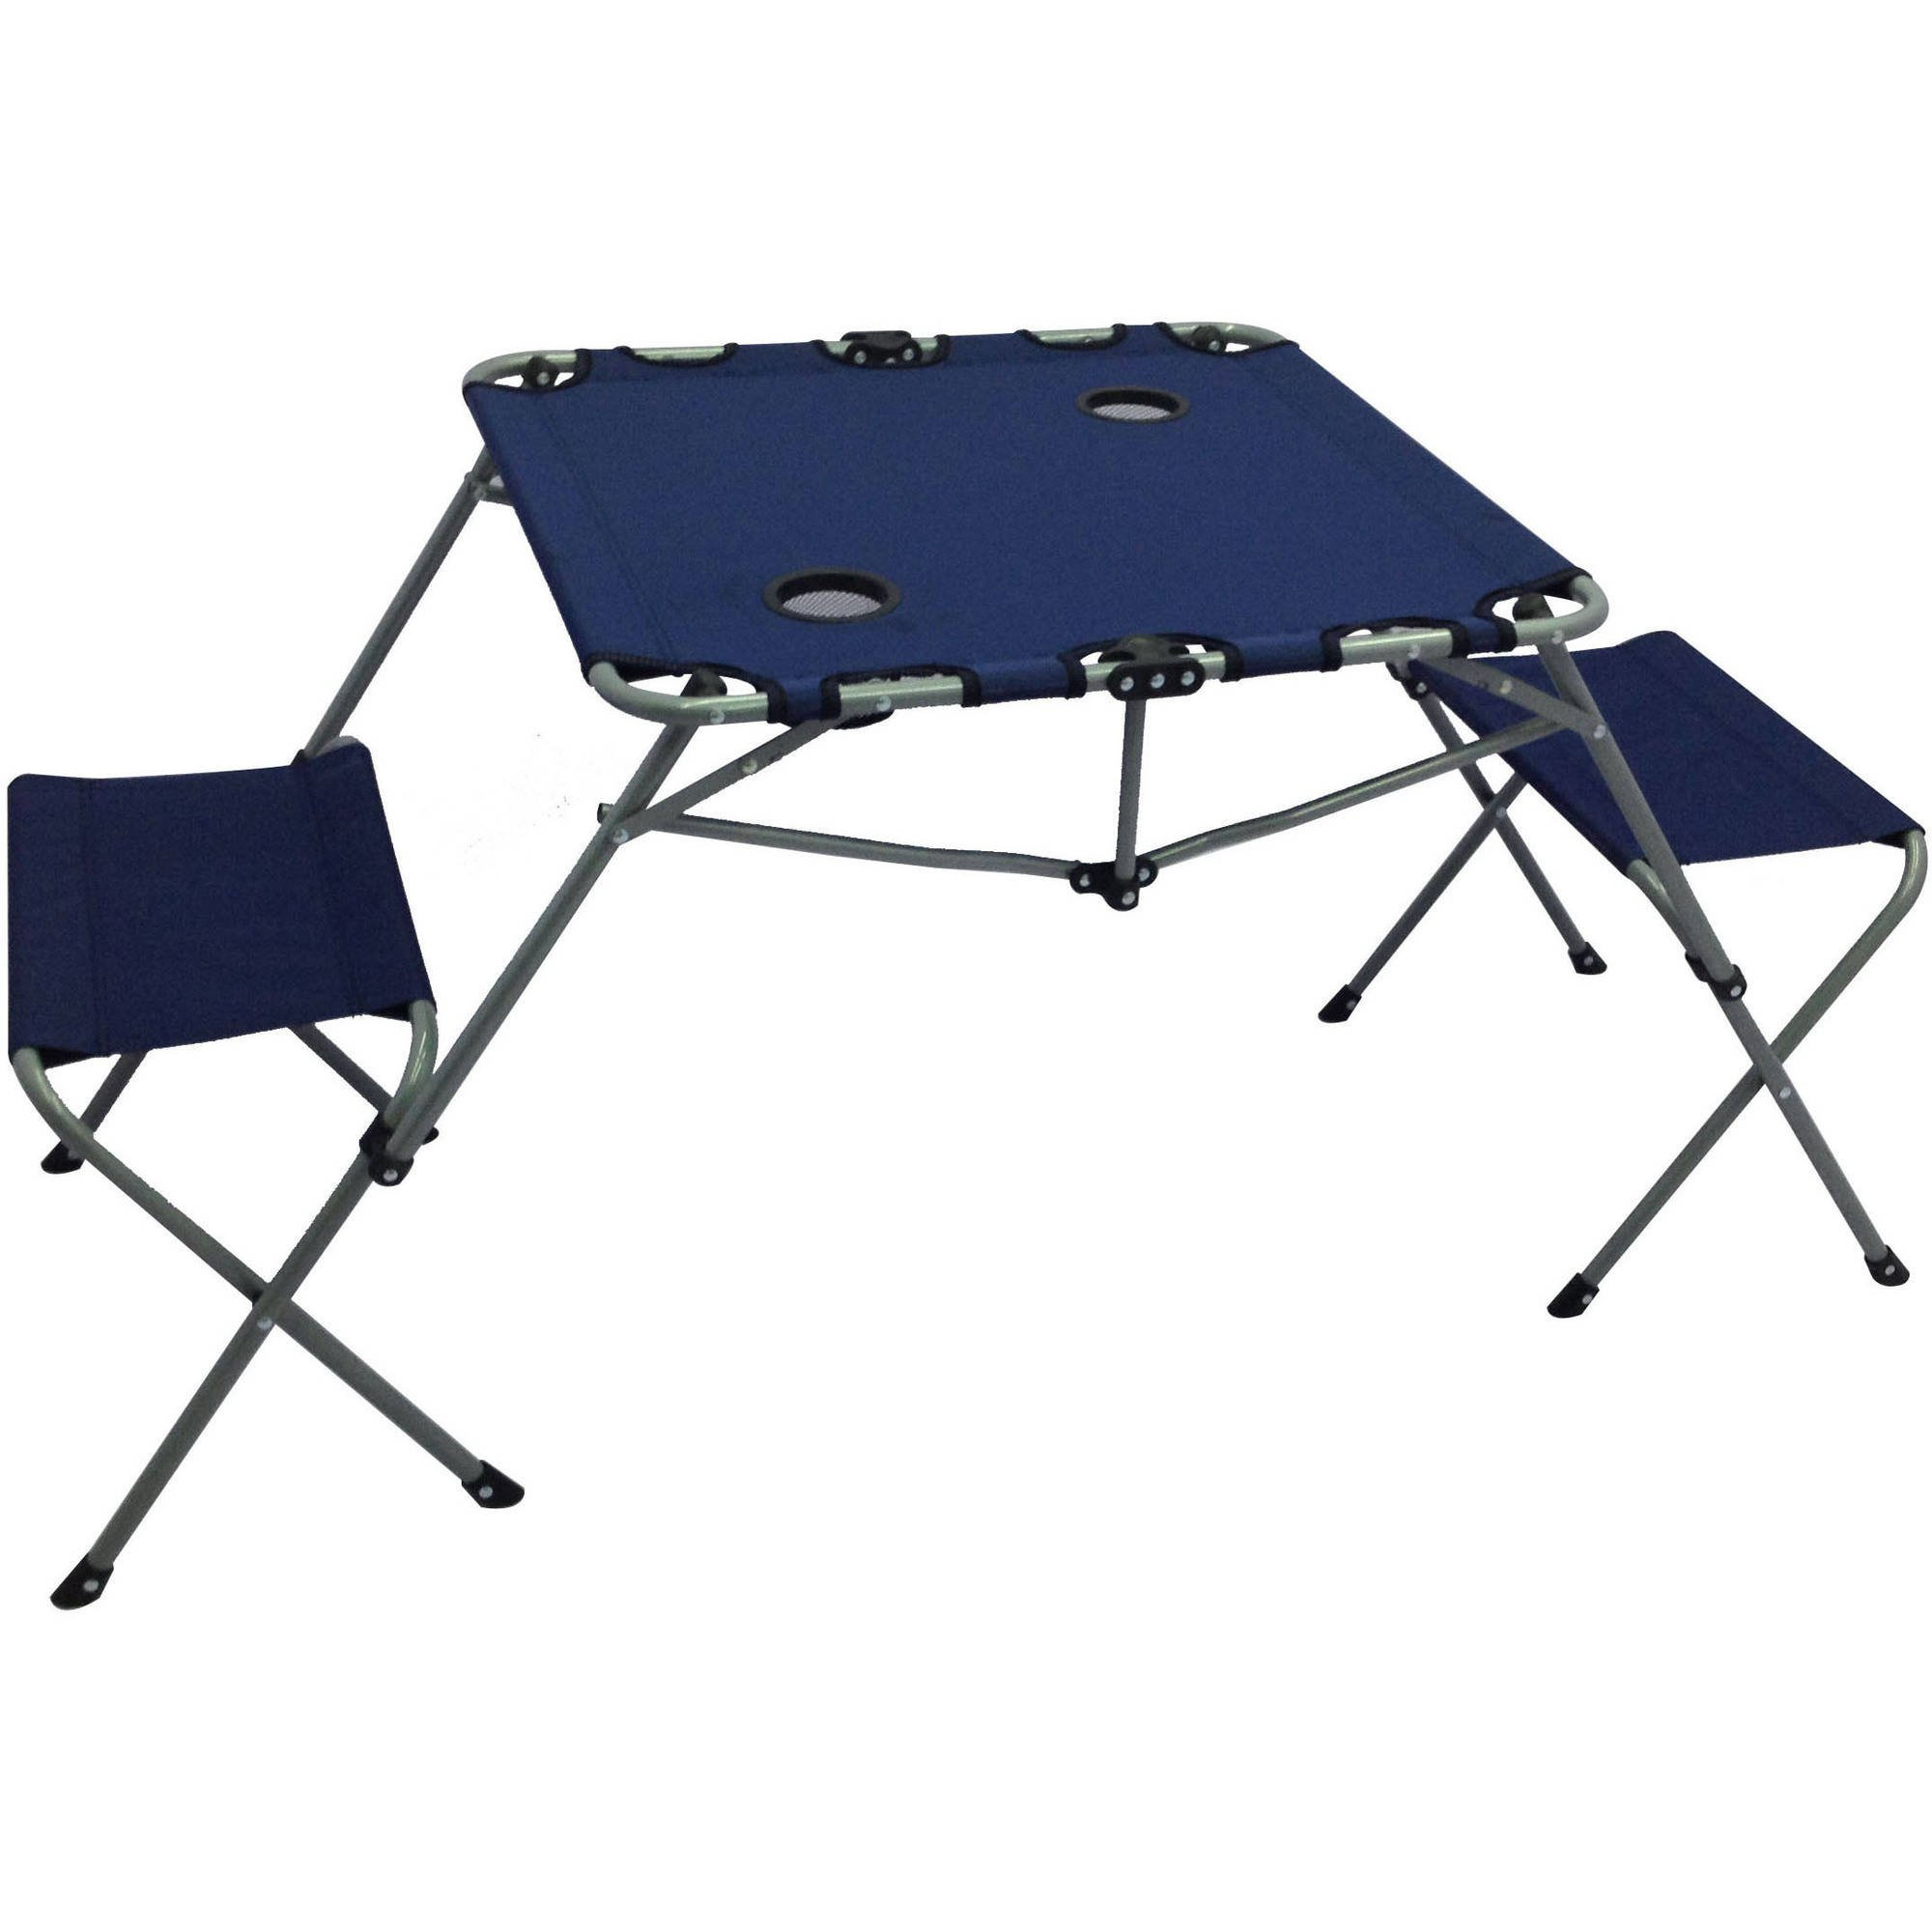 Ozark Trail 2-In-1 Table Set, Includes Two Seats And Two Cup Holders, Great For Picnic Or Camping, Blue, SW16021BLU